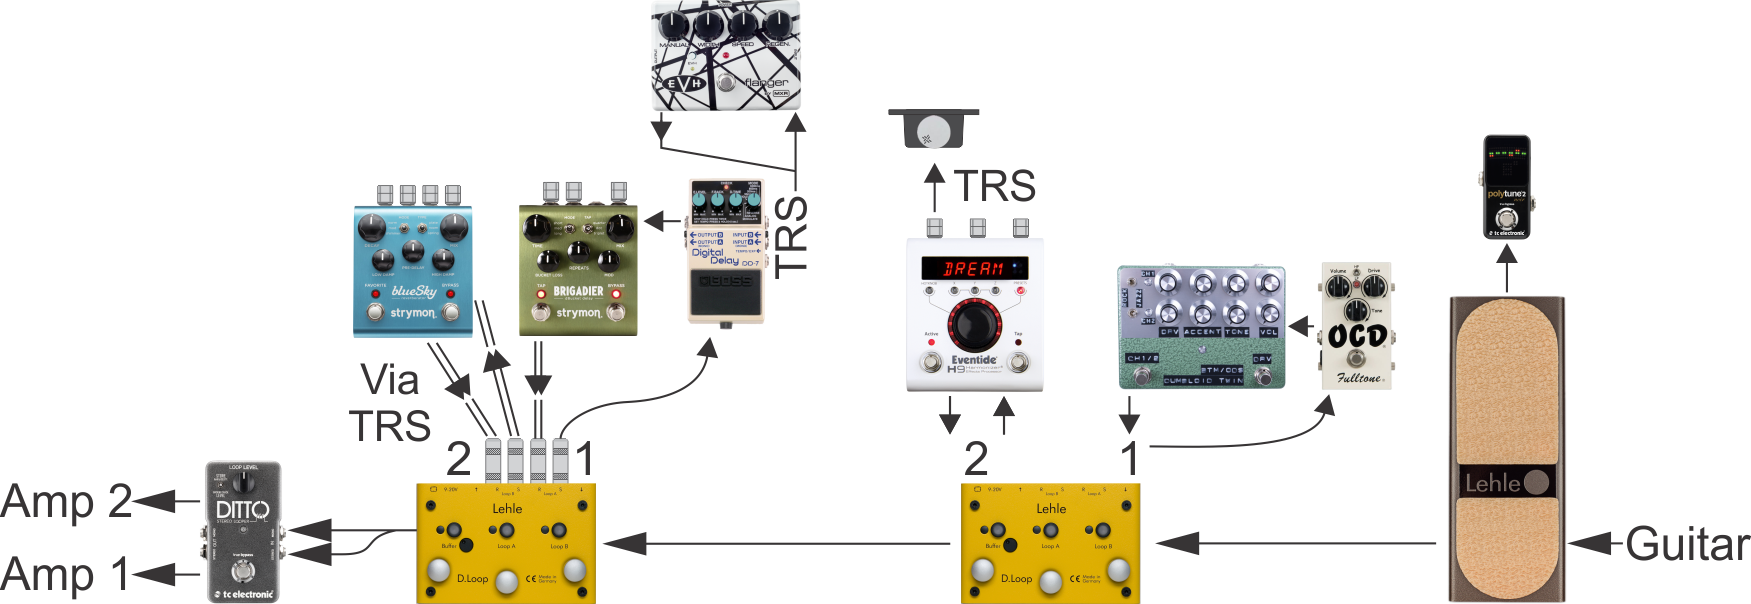 Tremendous Pedalboard Wiring Diagram Basic Electronics Wiring Diagram Wiring Digital Resources Anistprontobusorg